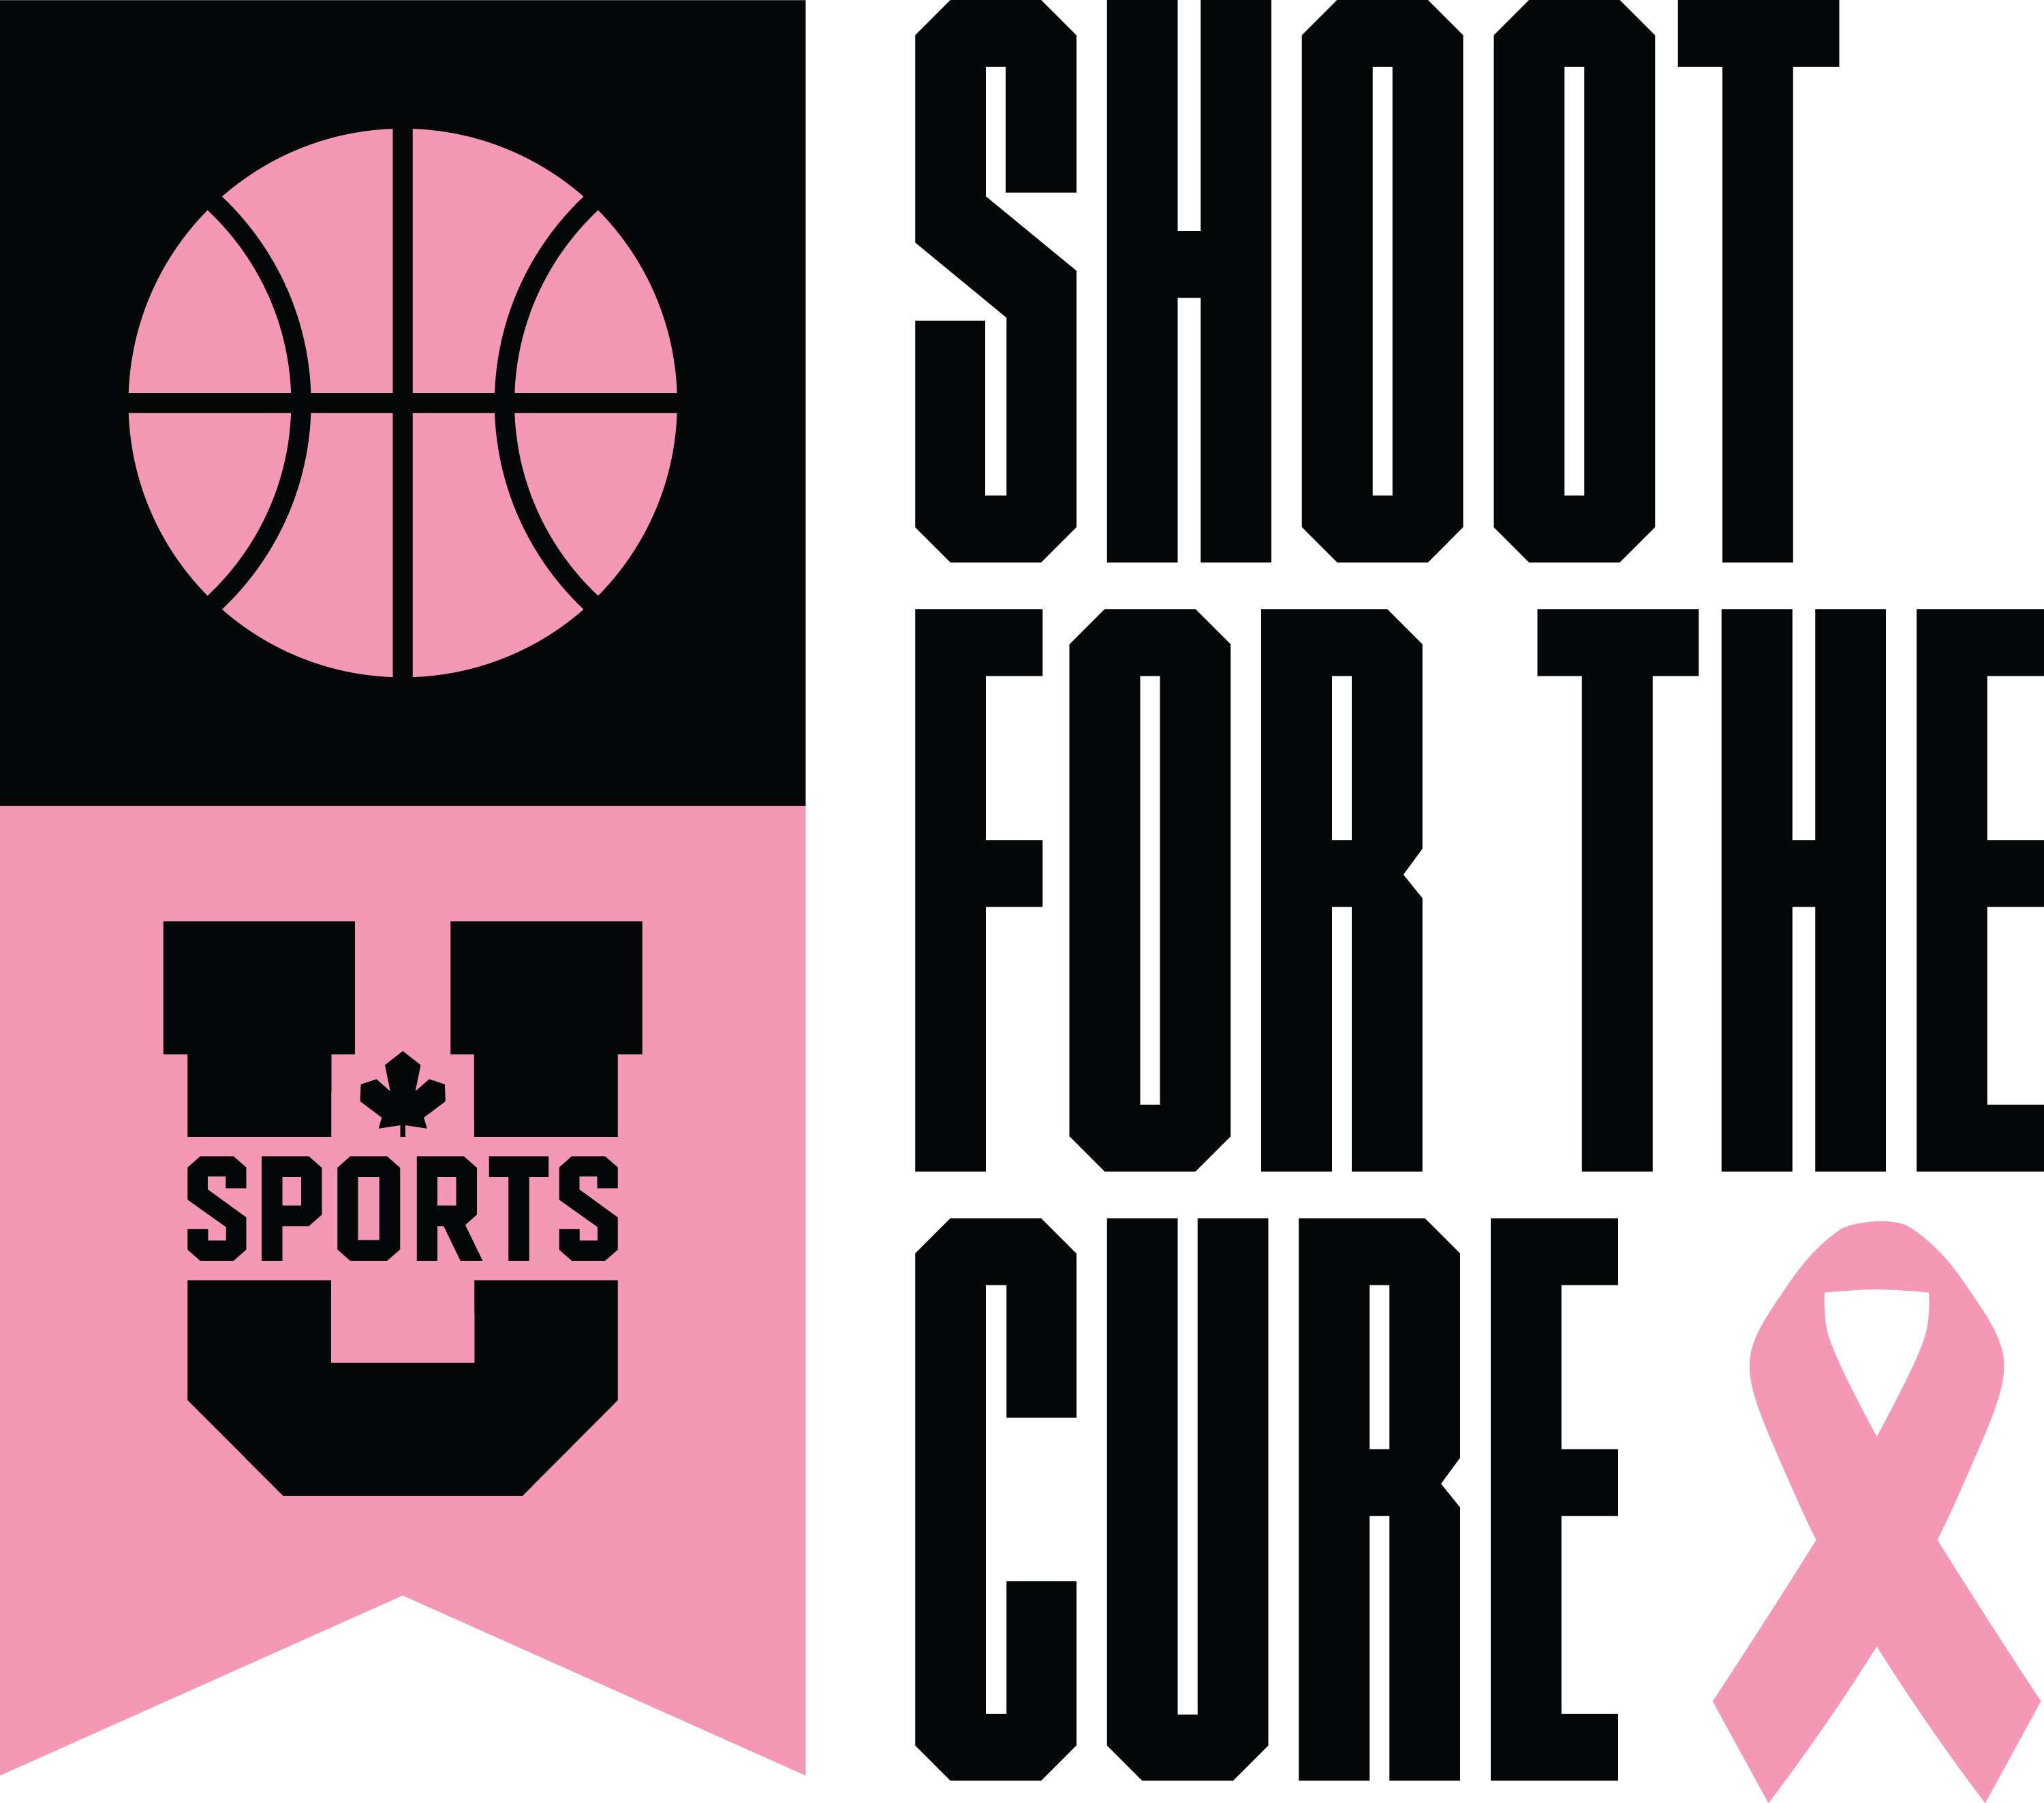 USports_ShootForTheCure_logo.jpg (853 KB)